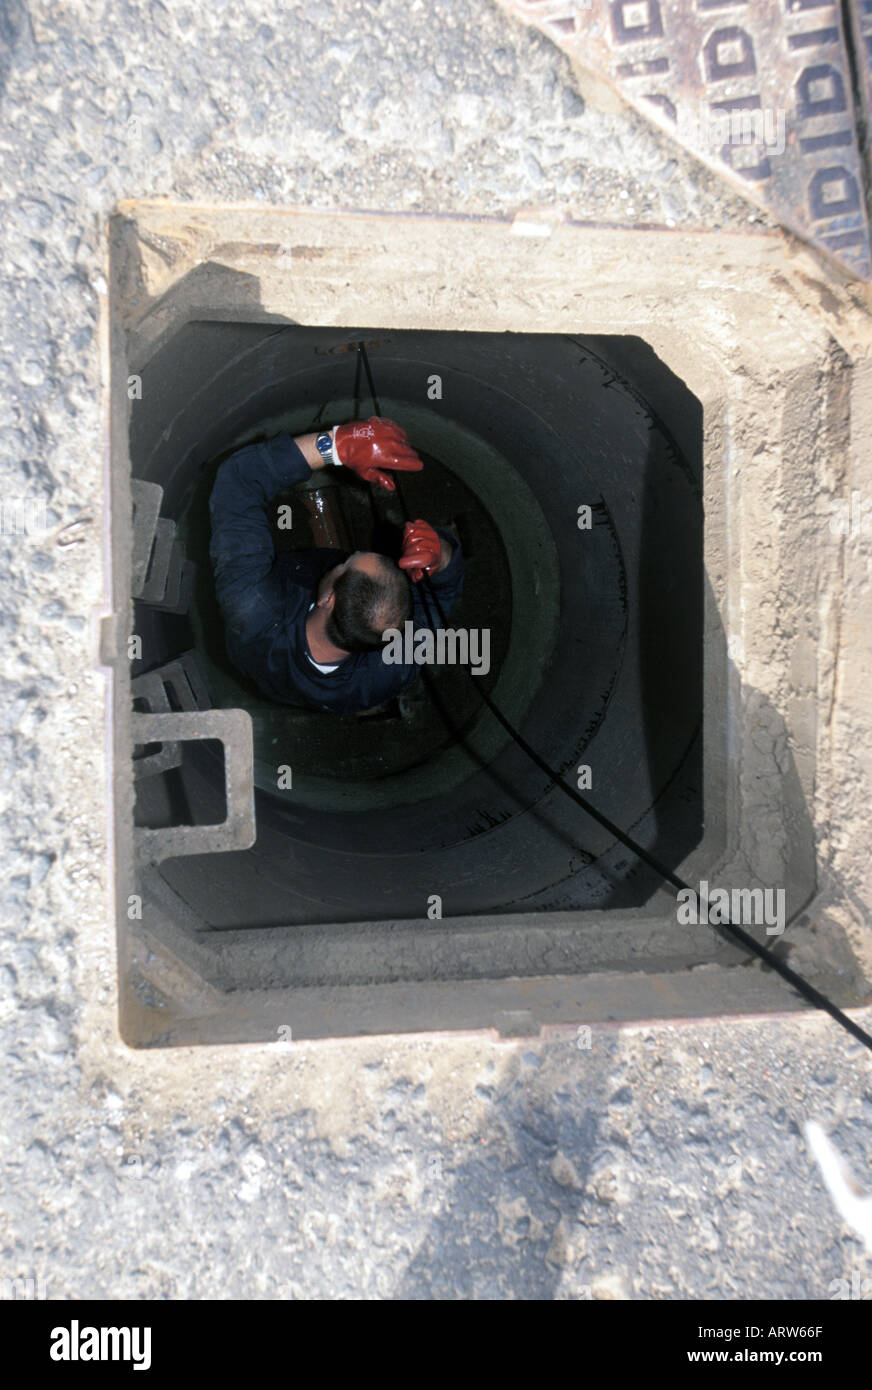 Inspecting a sewer using CCTV - Stock Image